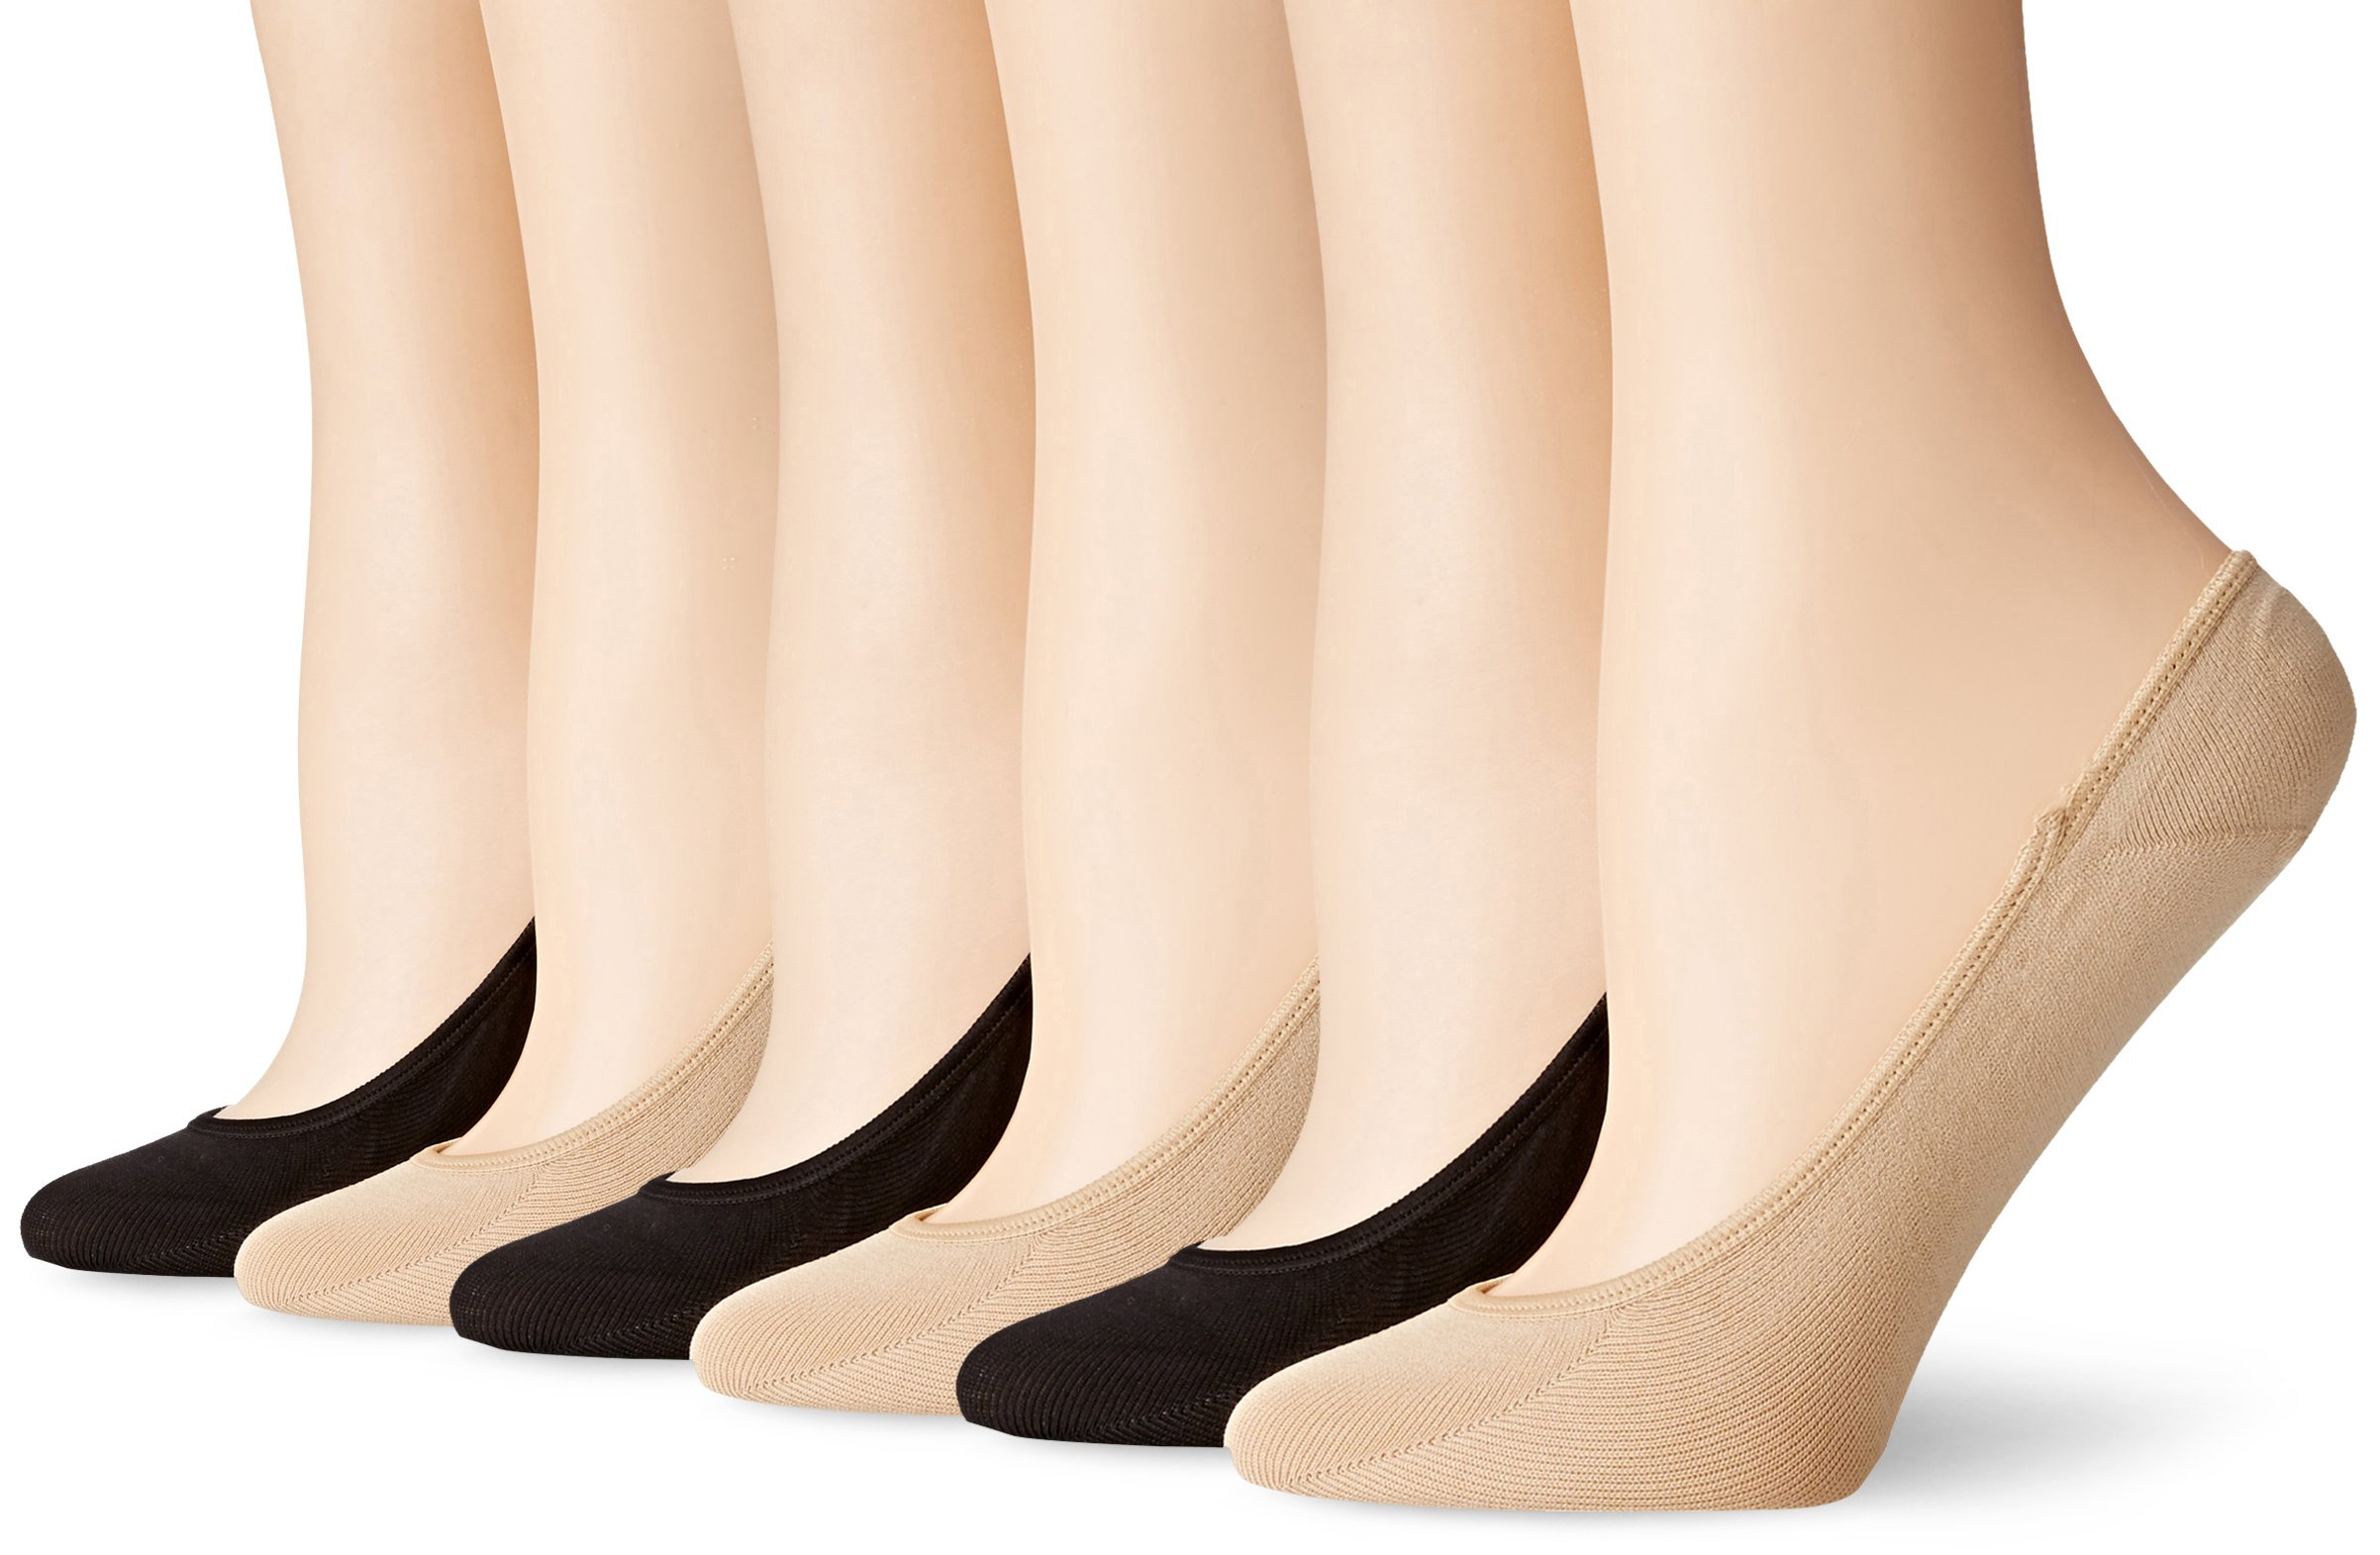 PEDS Women's Ultra Low Microfiber Liner with Gel Tab - 6 Pairs, Black/Nude, Shoe Size 5-10